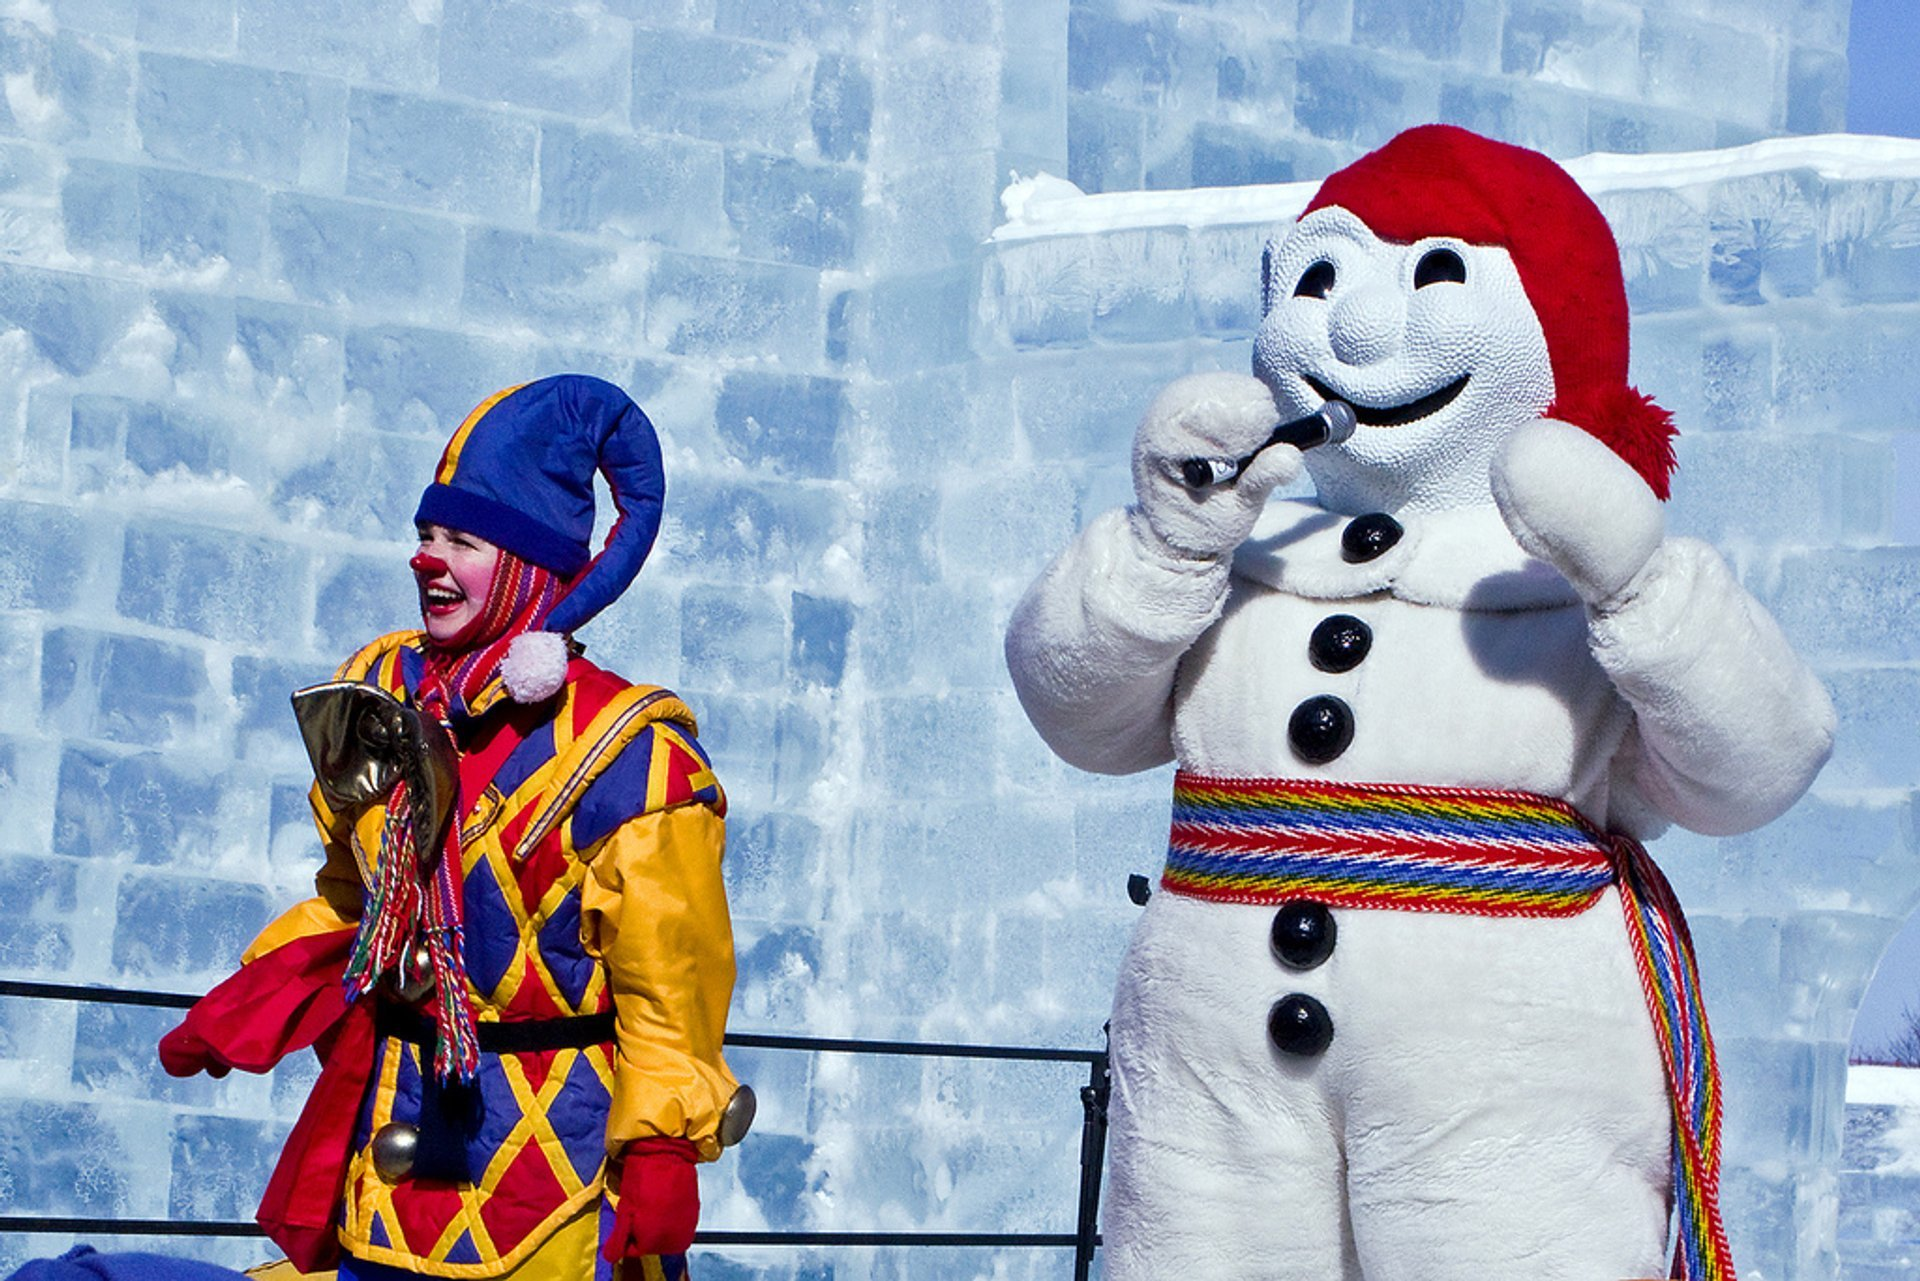 Quebec Winter Carnival (Carnaval de Québec) in Quebec 2019 - Best Time